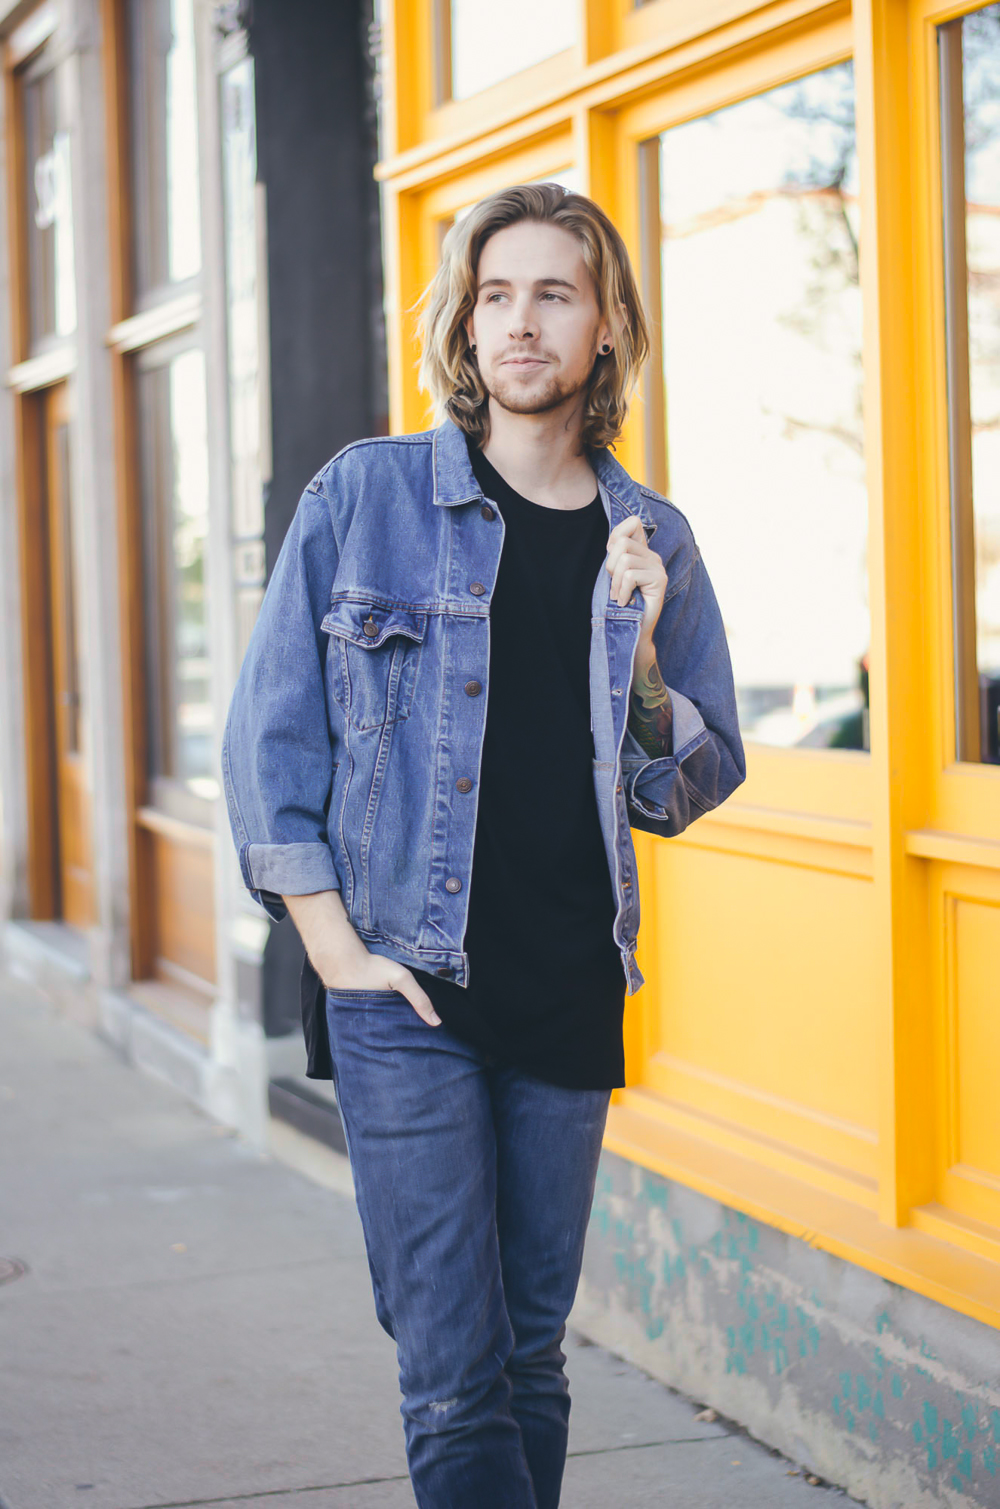 The Kentucky Gent, a men's fashion and lifestyle blogger, in Zanerobe Flintlock T-Shirt, Levi's 511 Jeans, Levi's Denim Jacket, Richer Poorer Socks, Ray-Ban Aviator Sunglasses, and CAT Footwear boots.